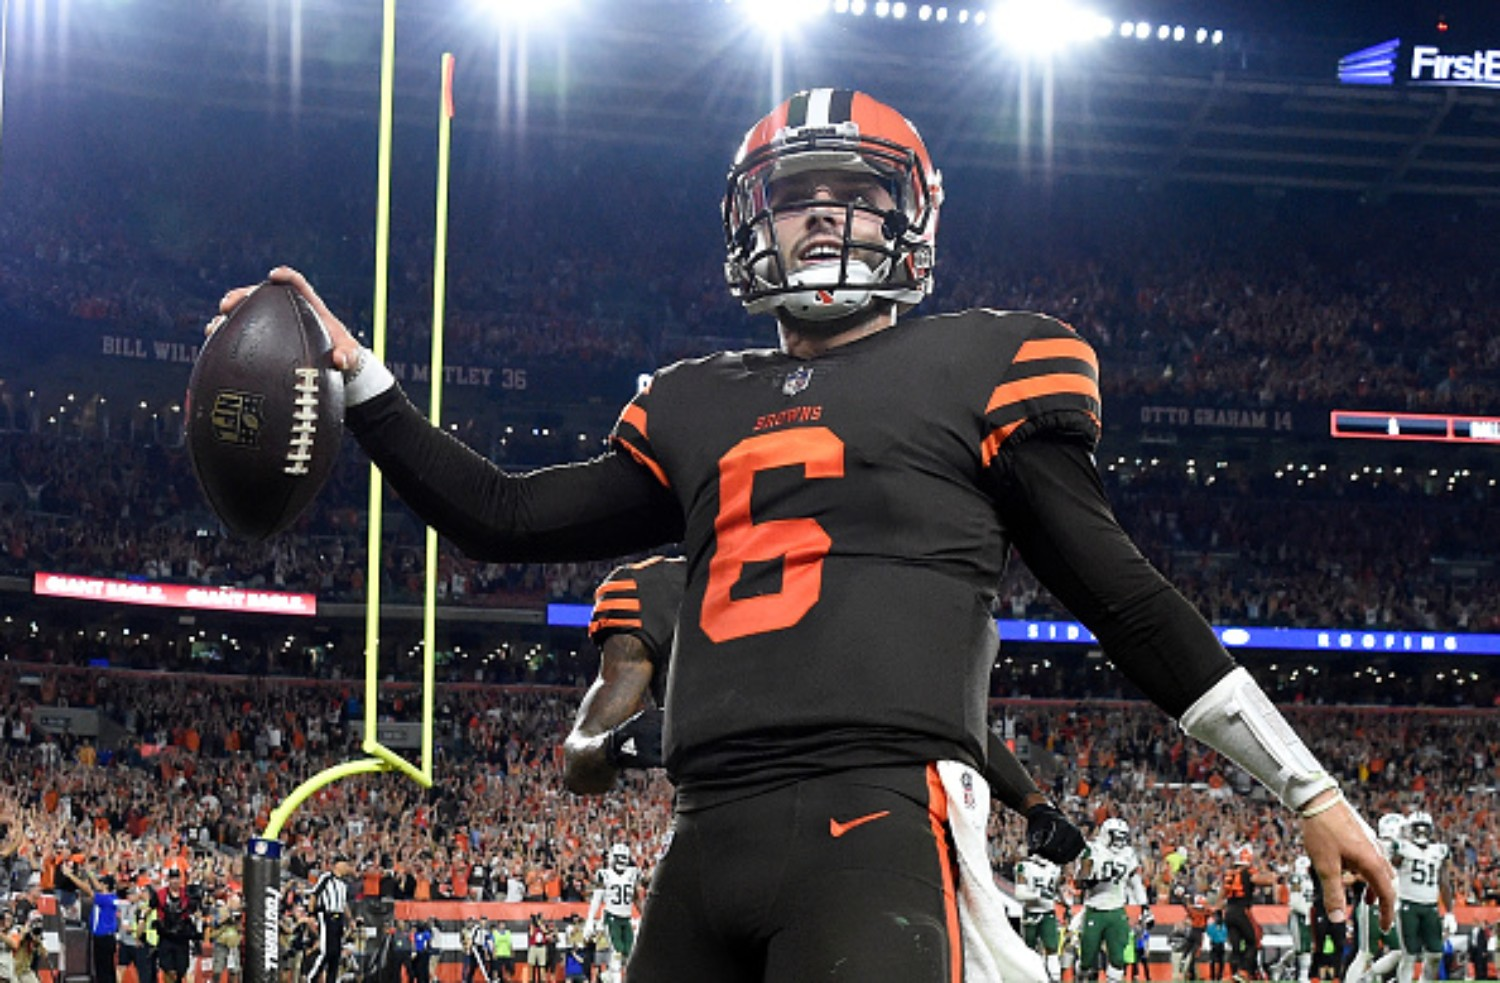 Baker Mayfield is Dooming the Cleveland Browns to Even More Mediocrity, According to an NFL Veteran/ESPN Analyst